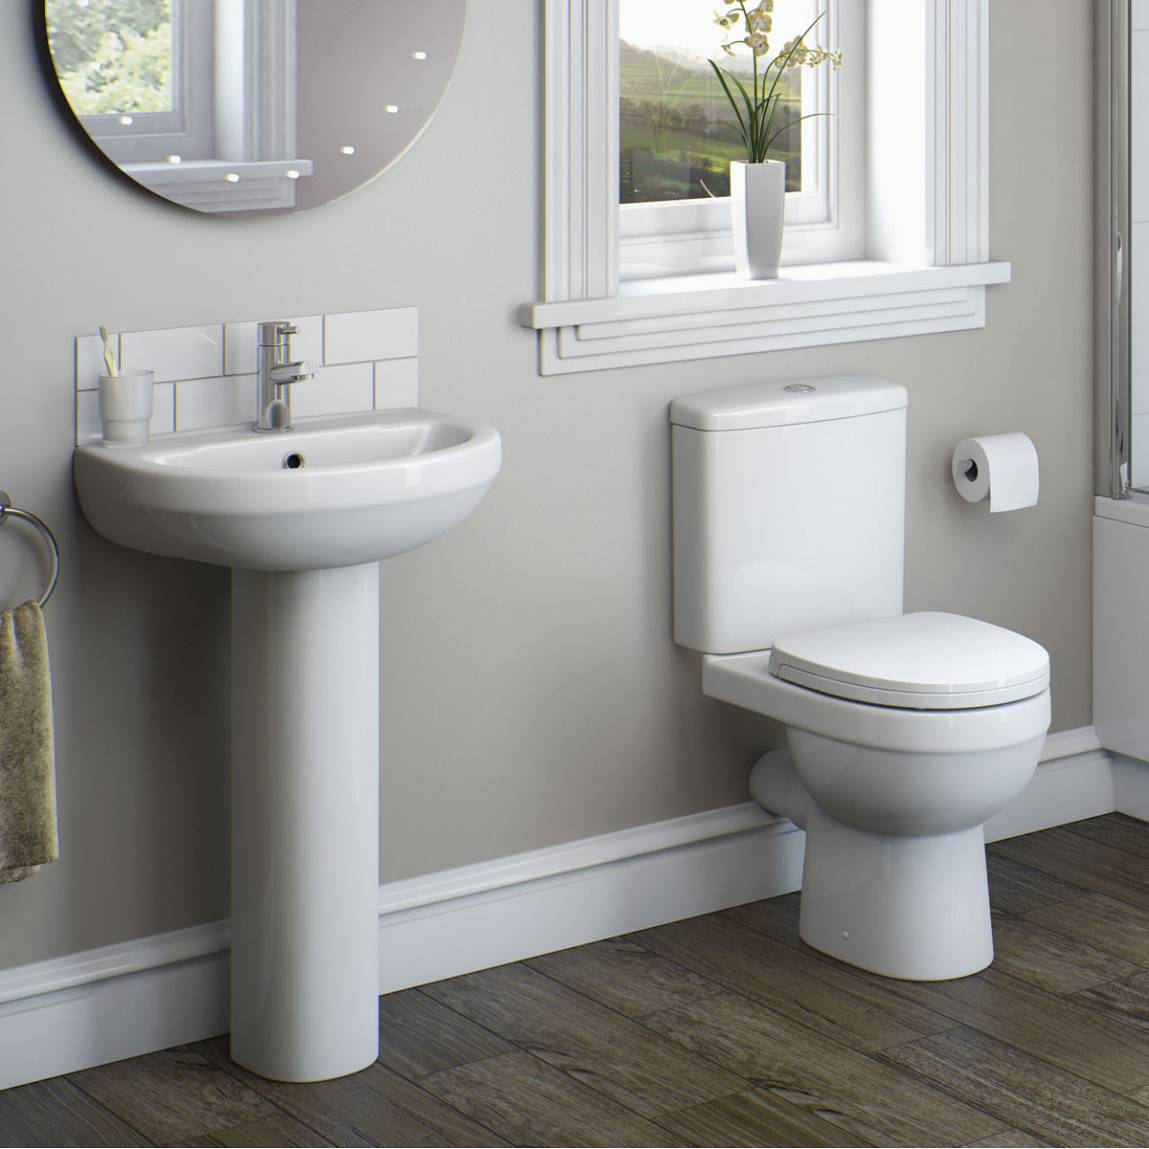 Bathroom products for small spaces for Small bathroom uk